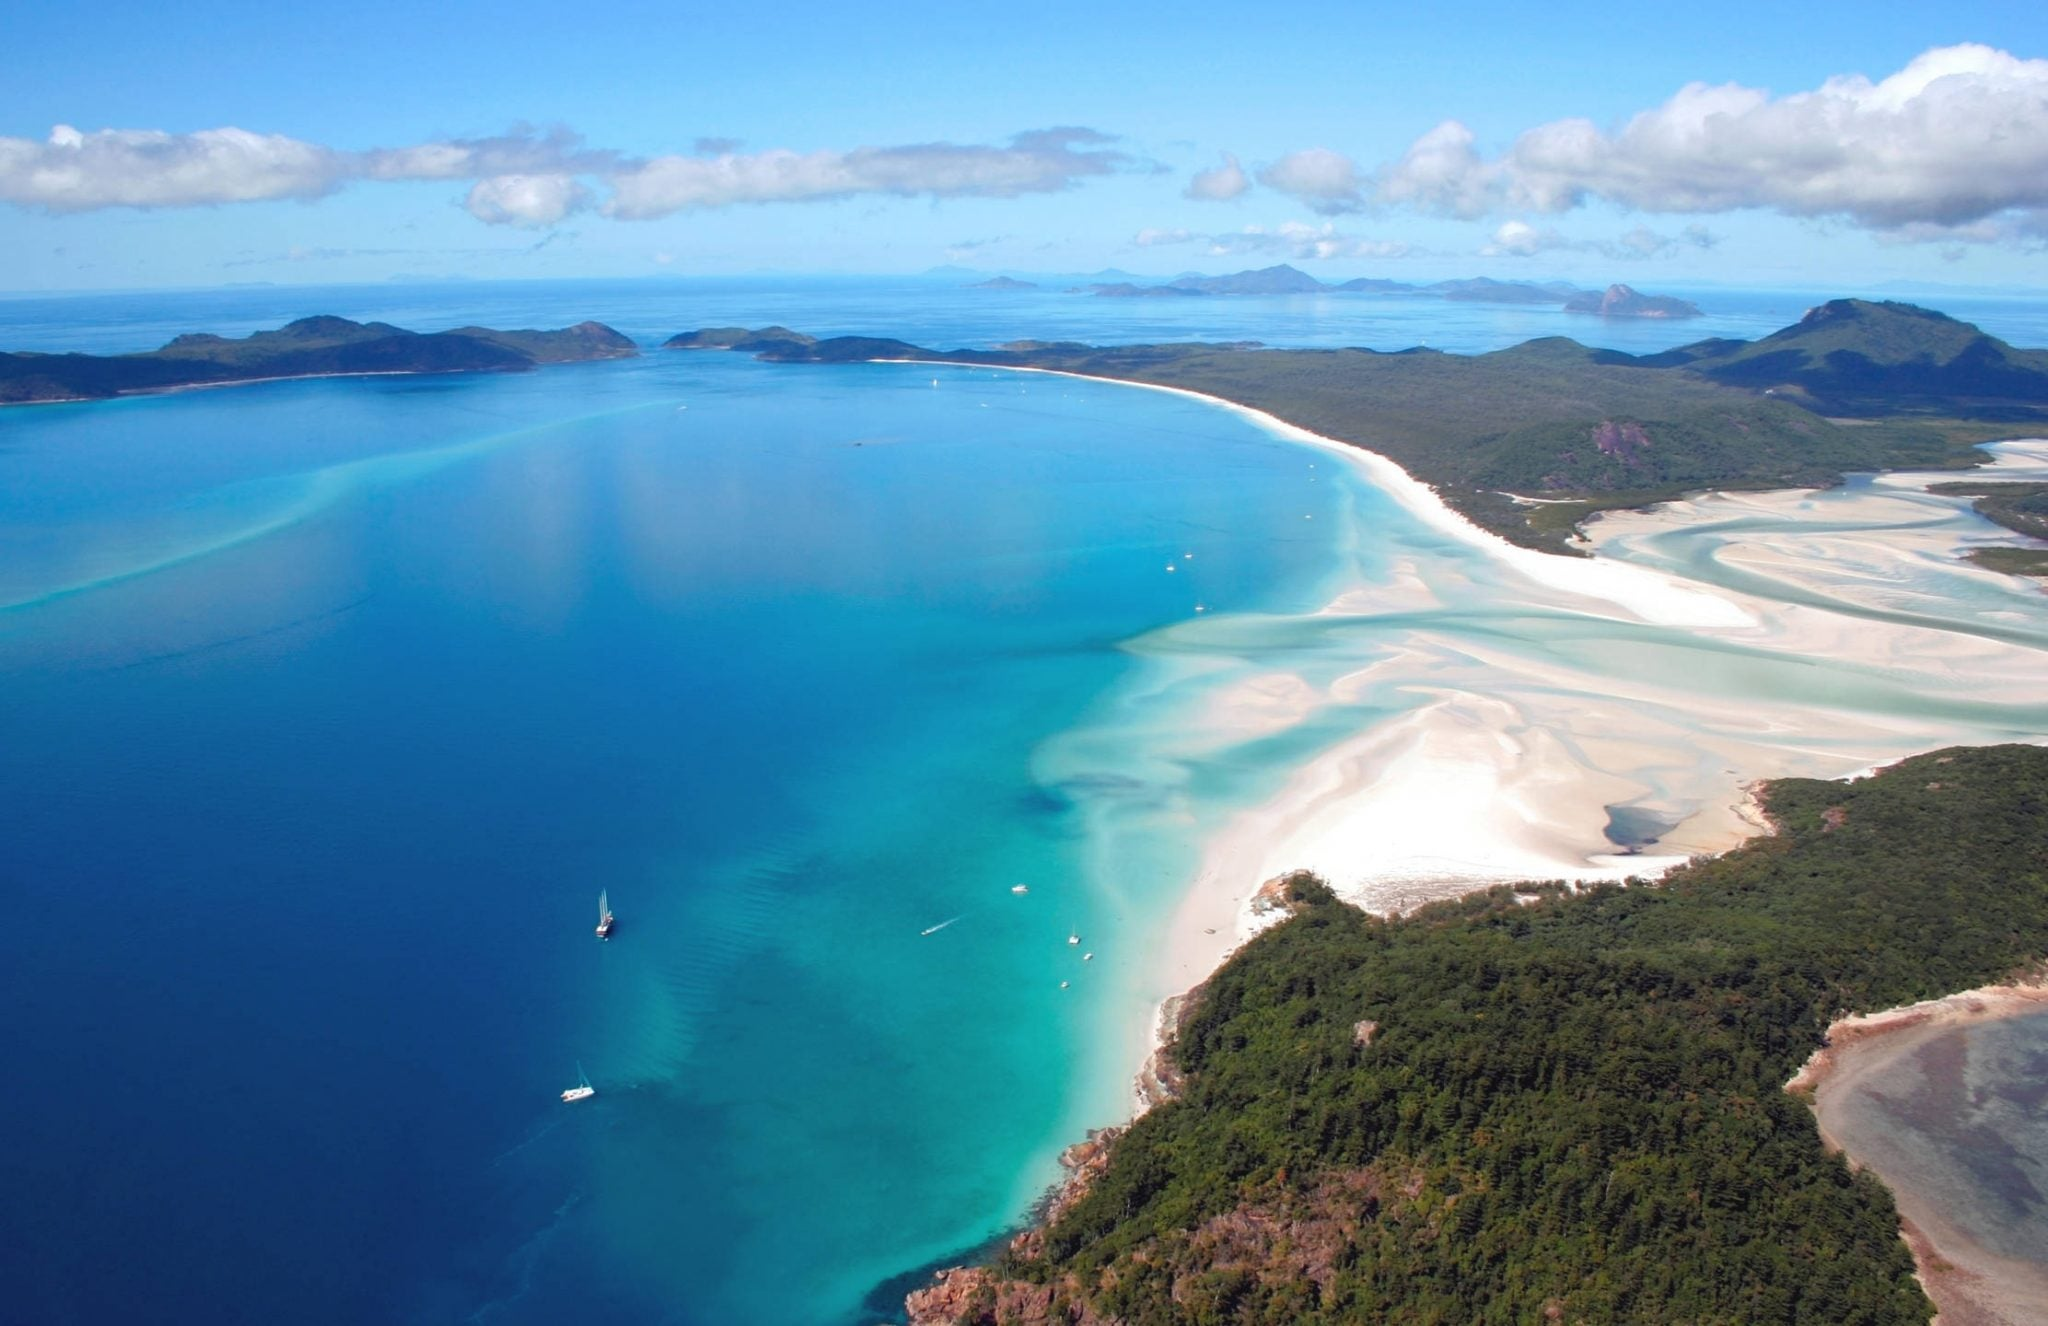 Scenery in the Whitsunday Islands